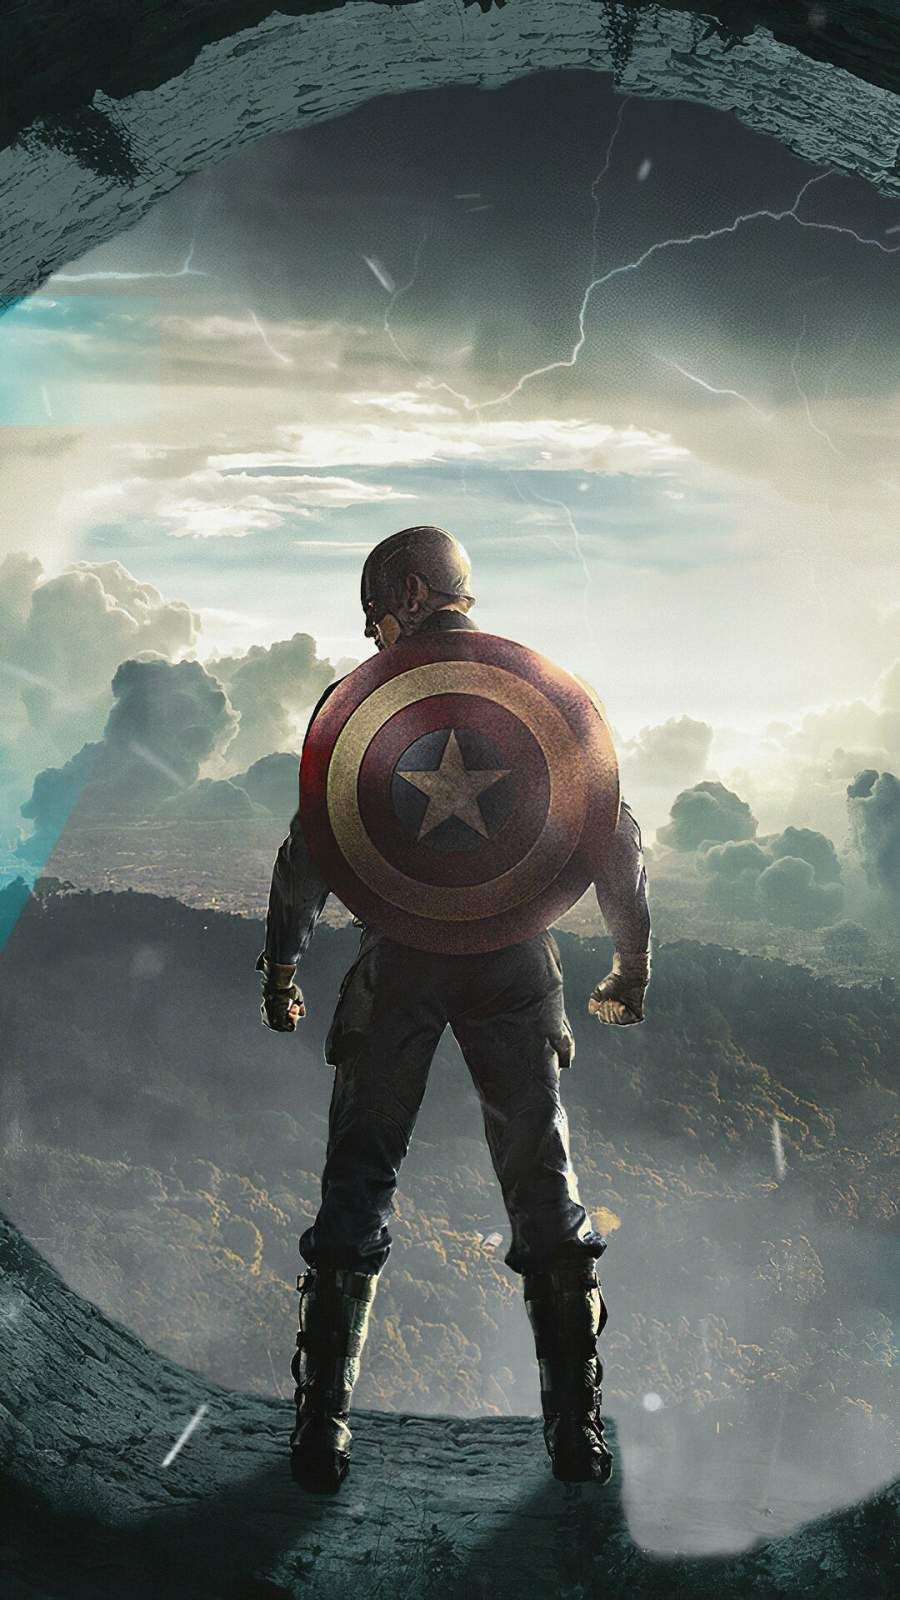 Captain America 4k Iphone Wallpaper Captain America Wallpaper Captain America Iphone Wallpaper